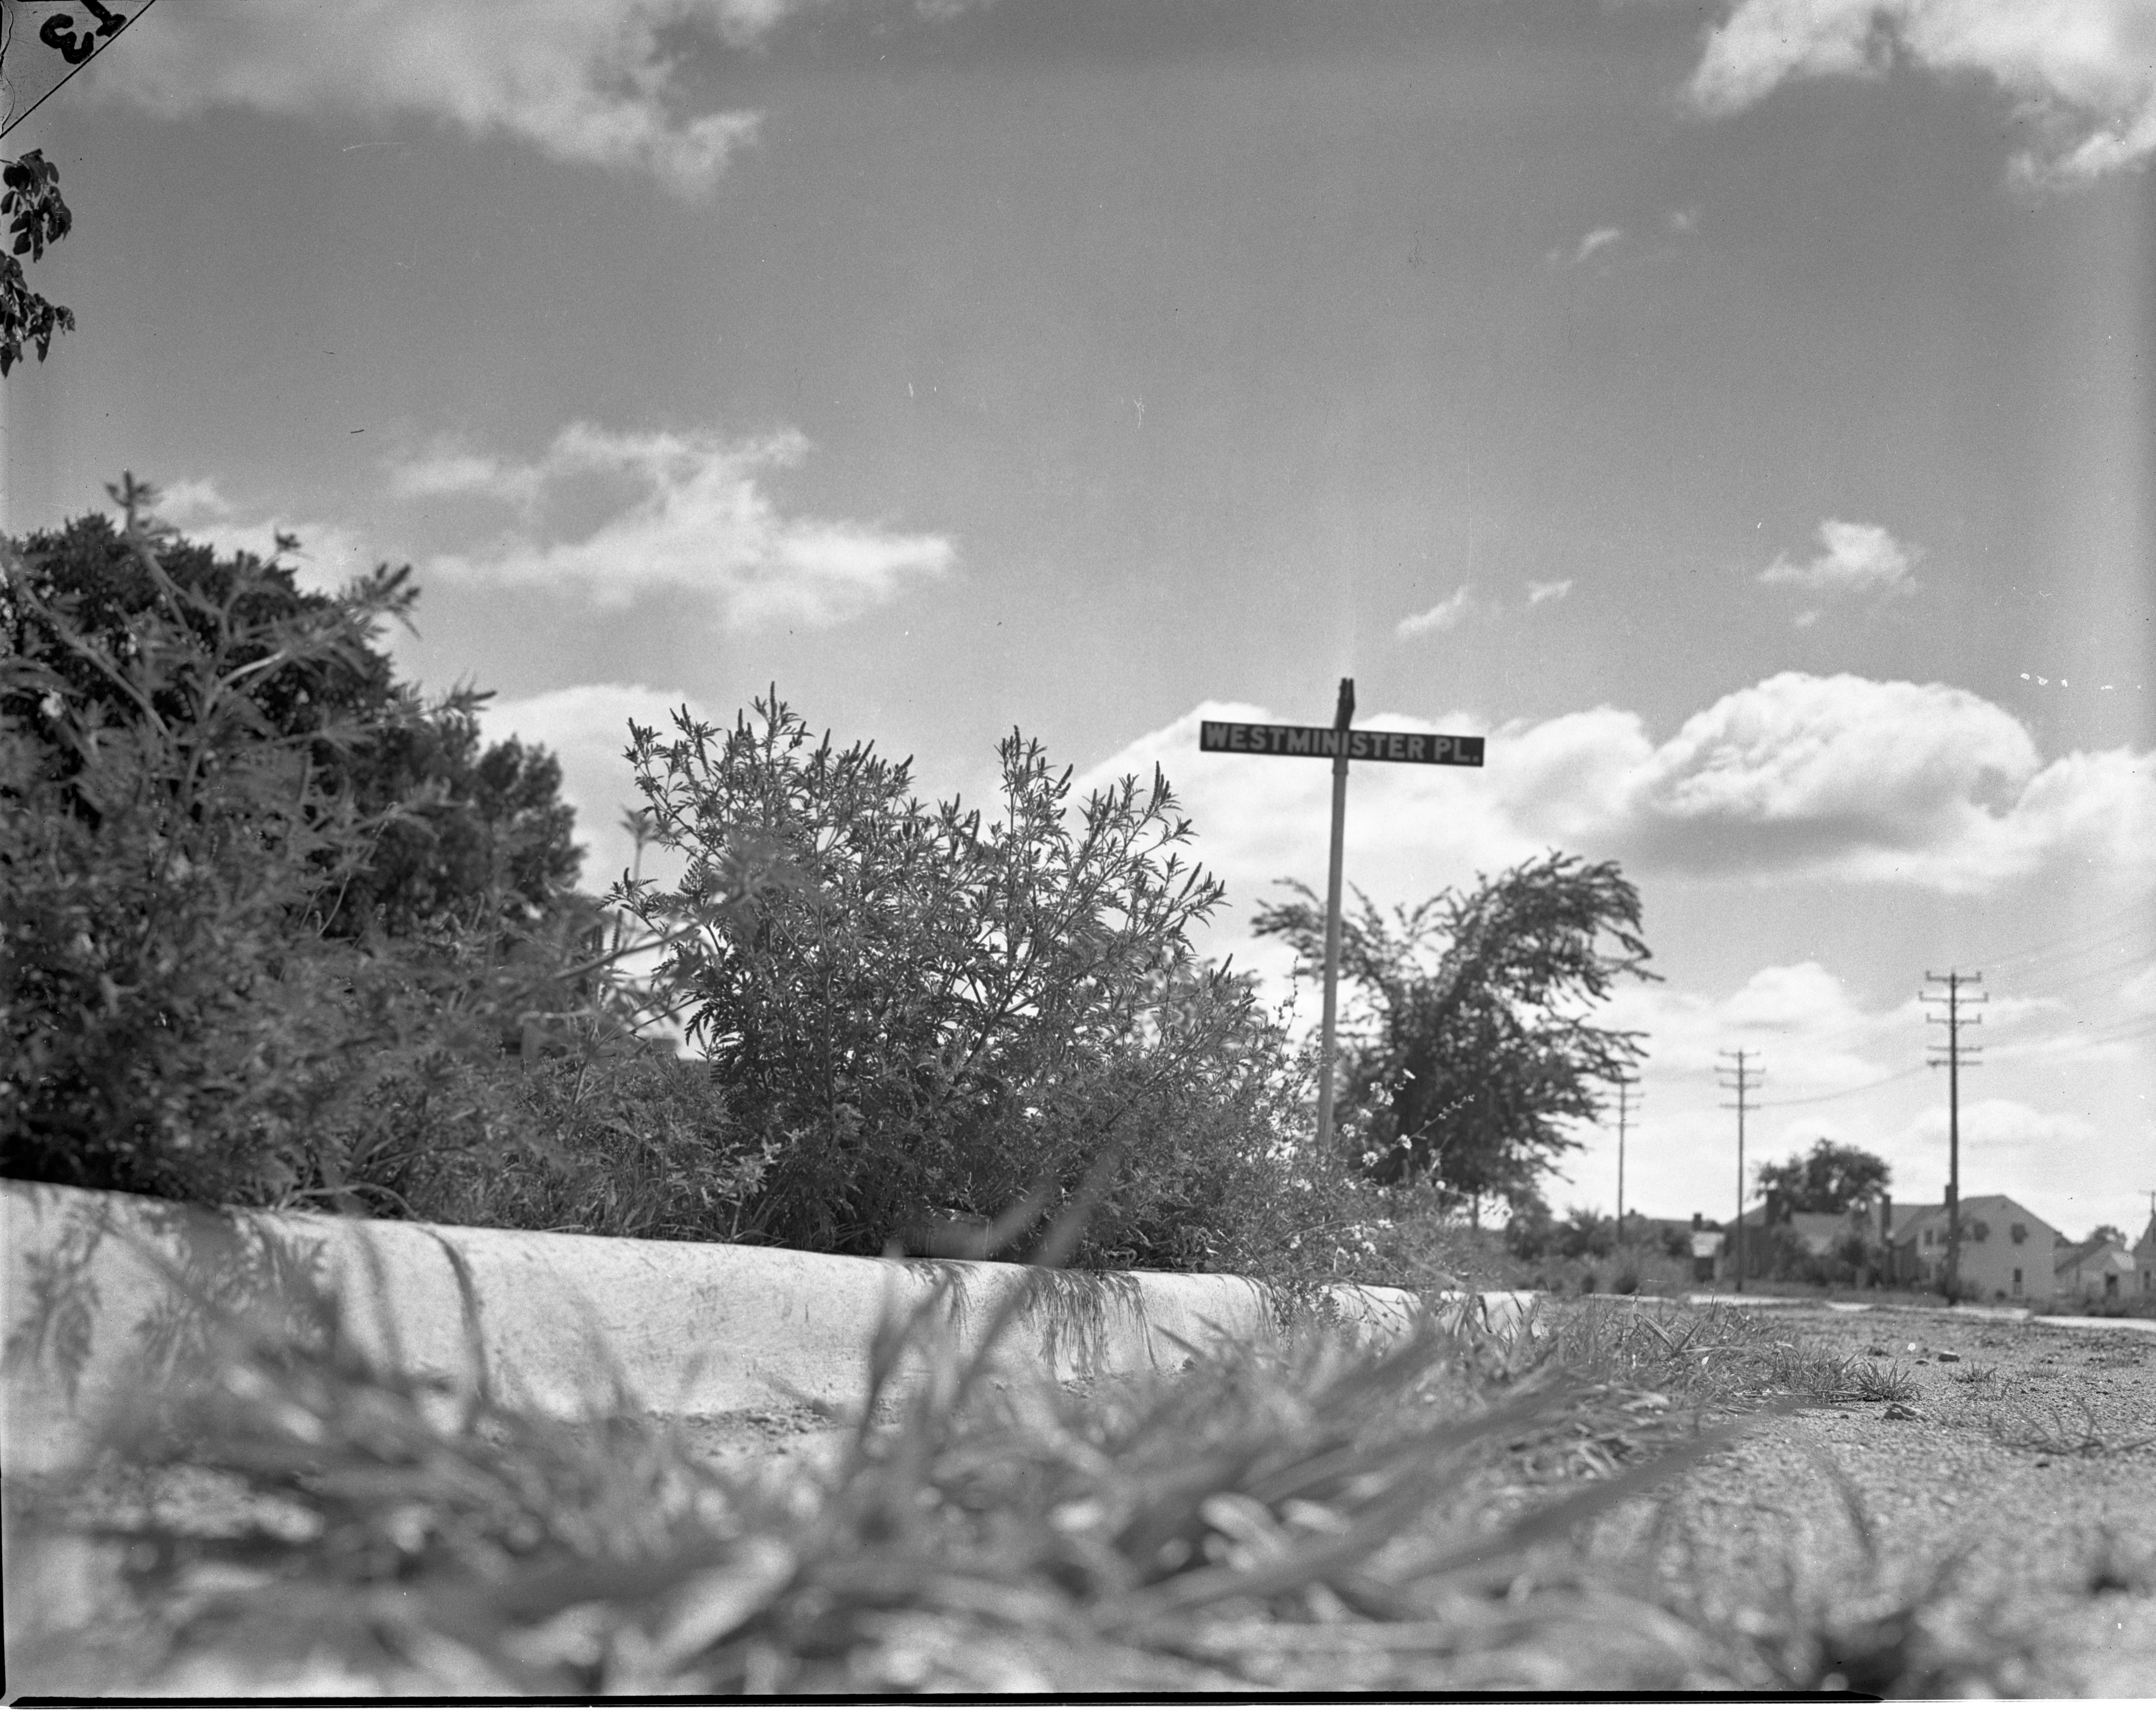 Ragweed Grows Plentiful At Intersection of Stadium Blvd and Westminster Place, August 1941 image